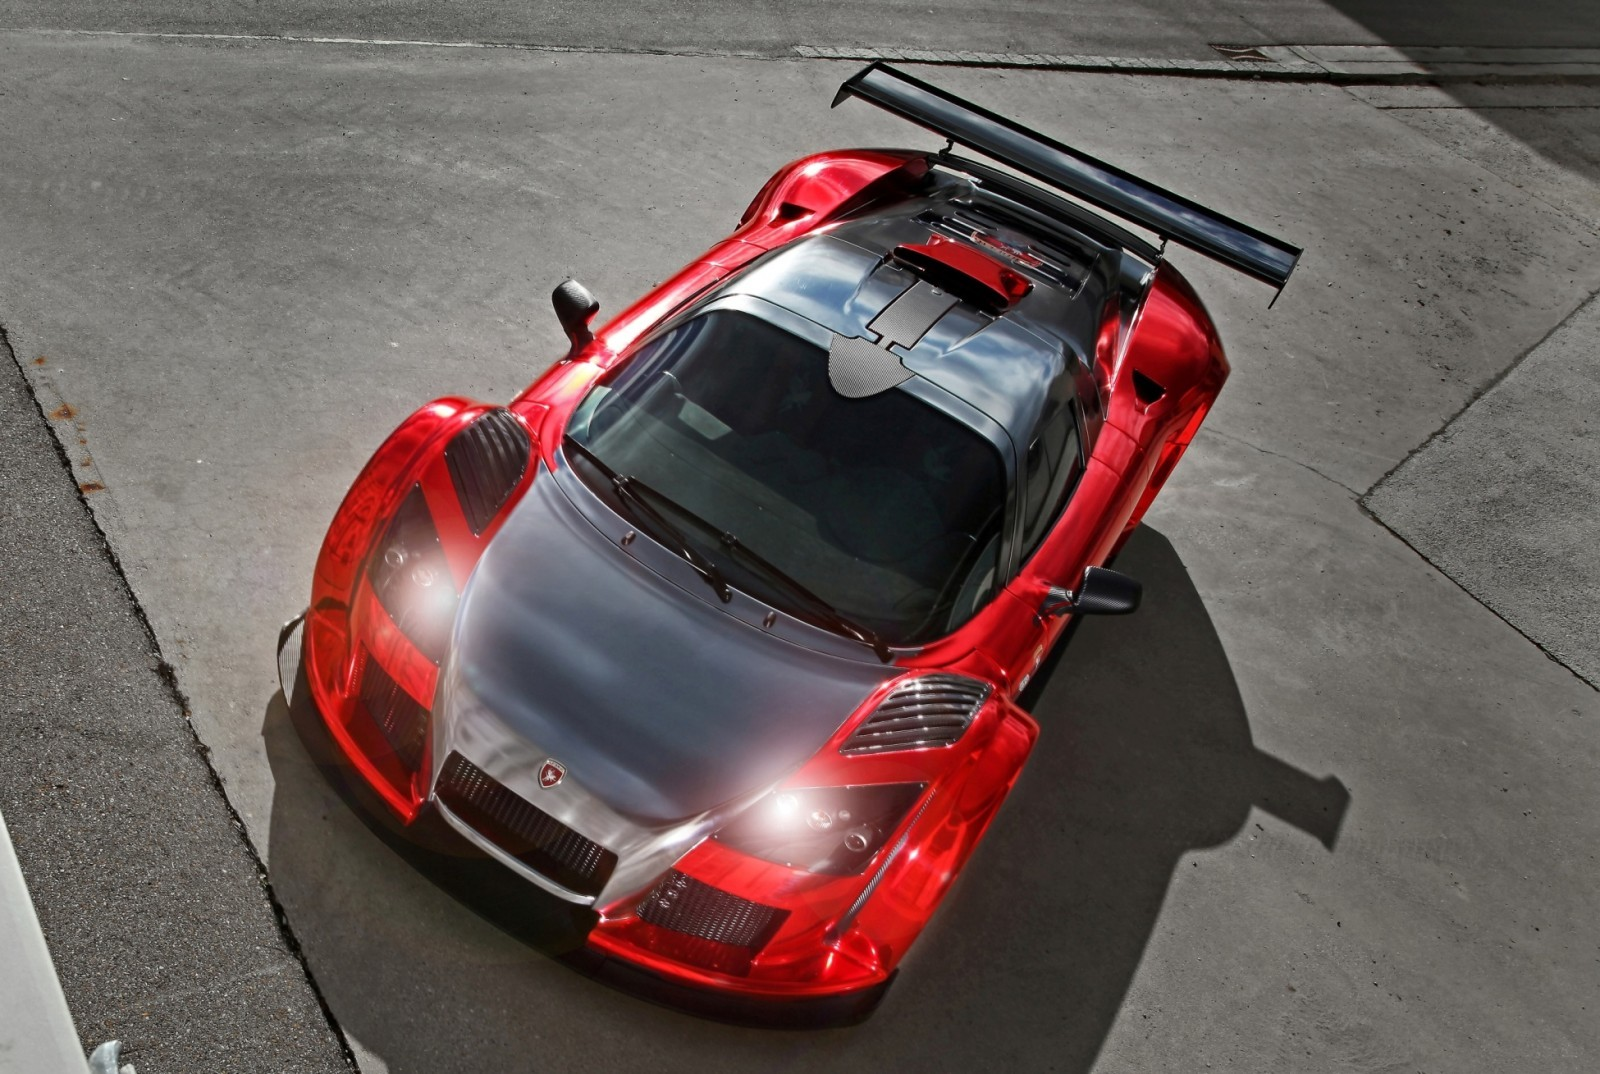 2M Designs GUMPERT APOLLO S 9